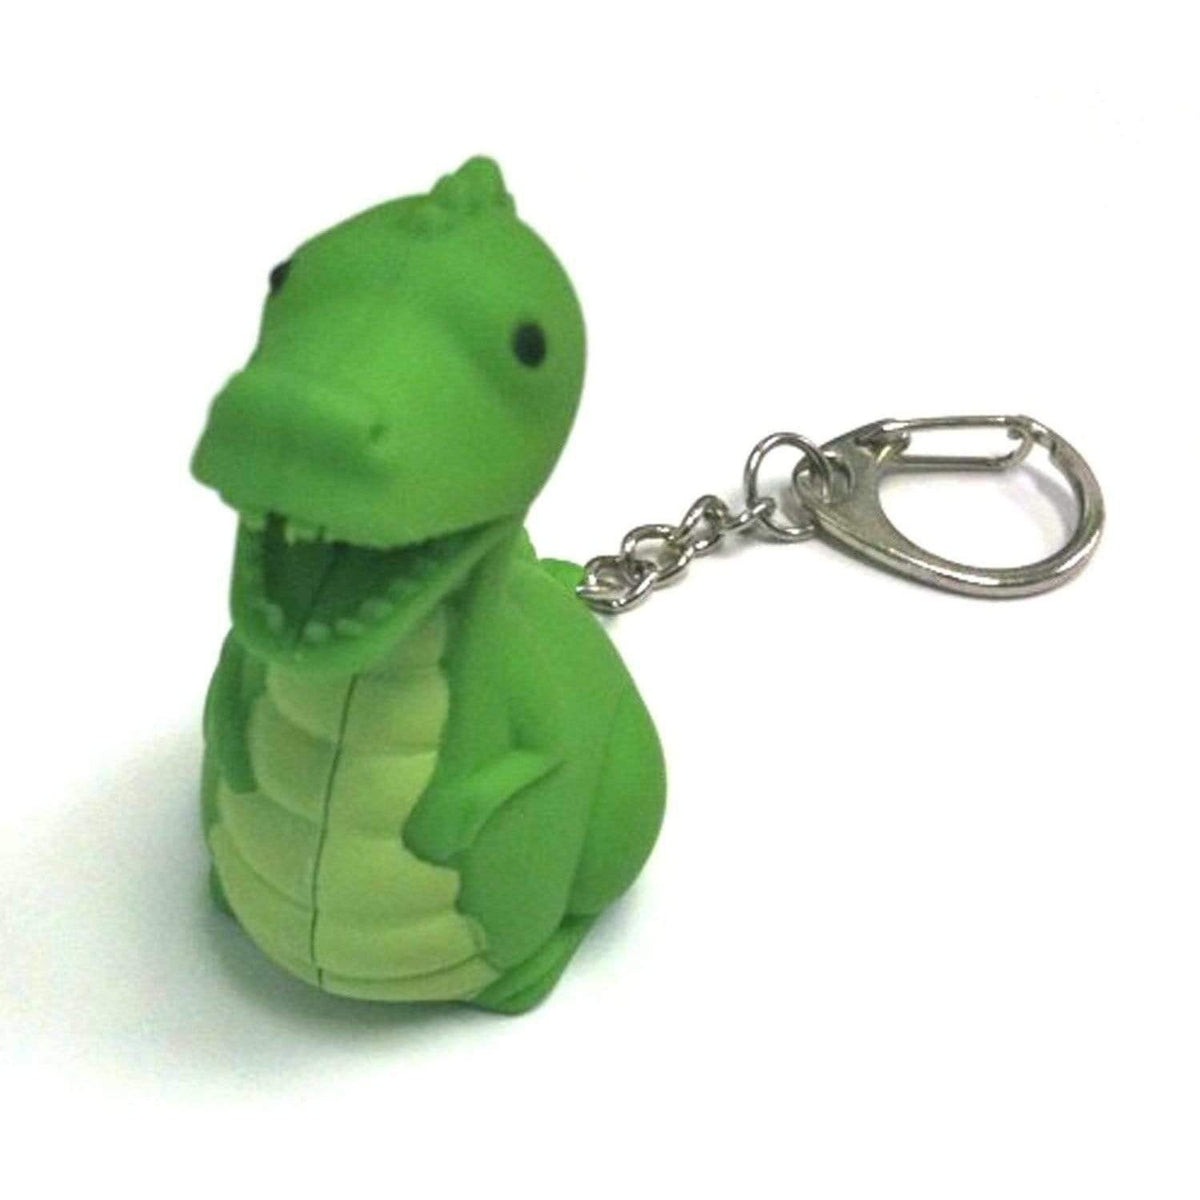 Roaring Dragon - Keyring With LED Light